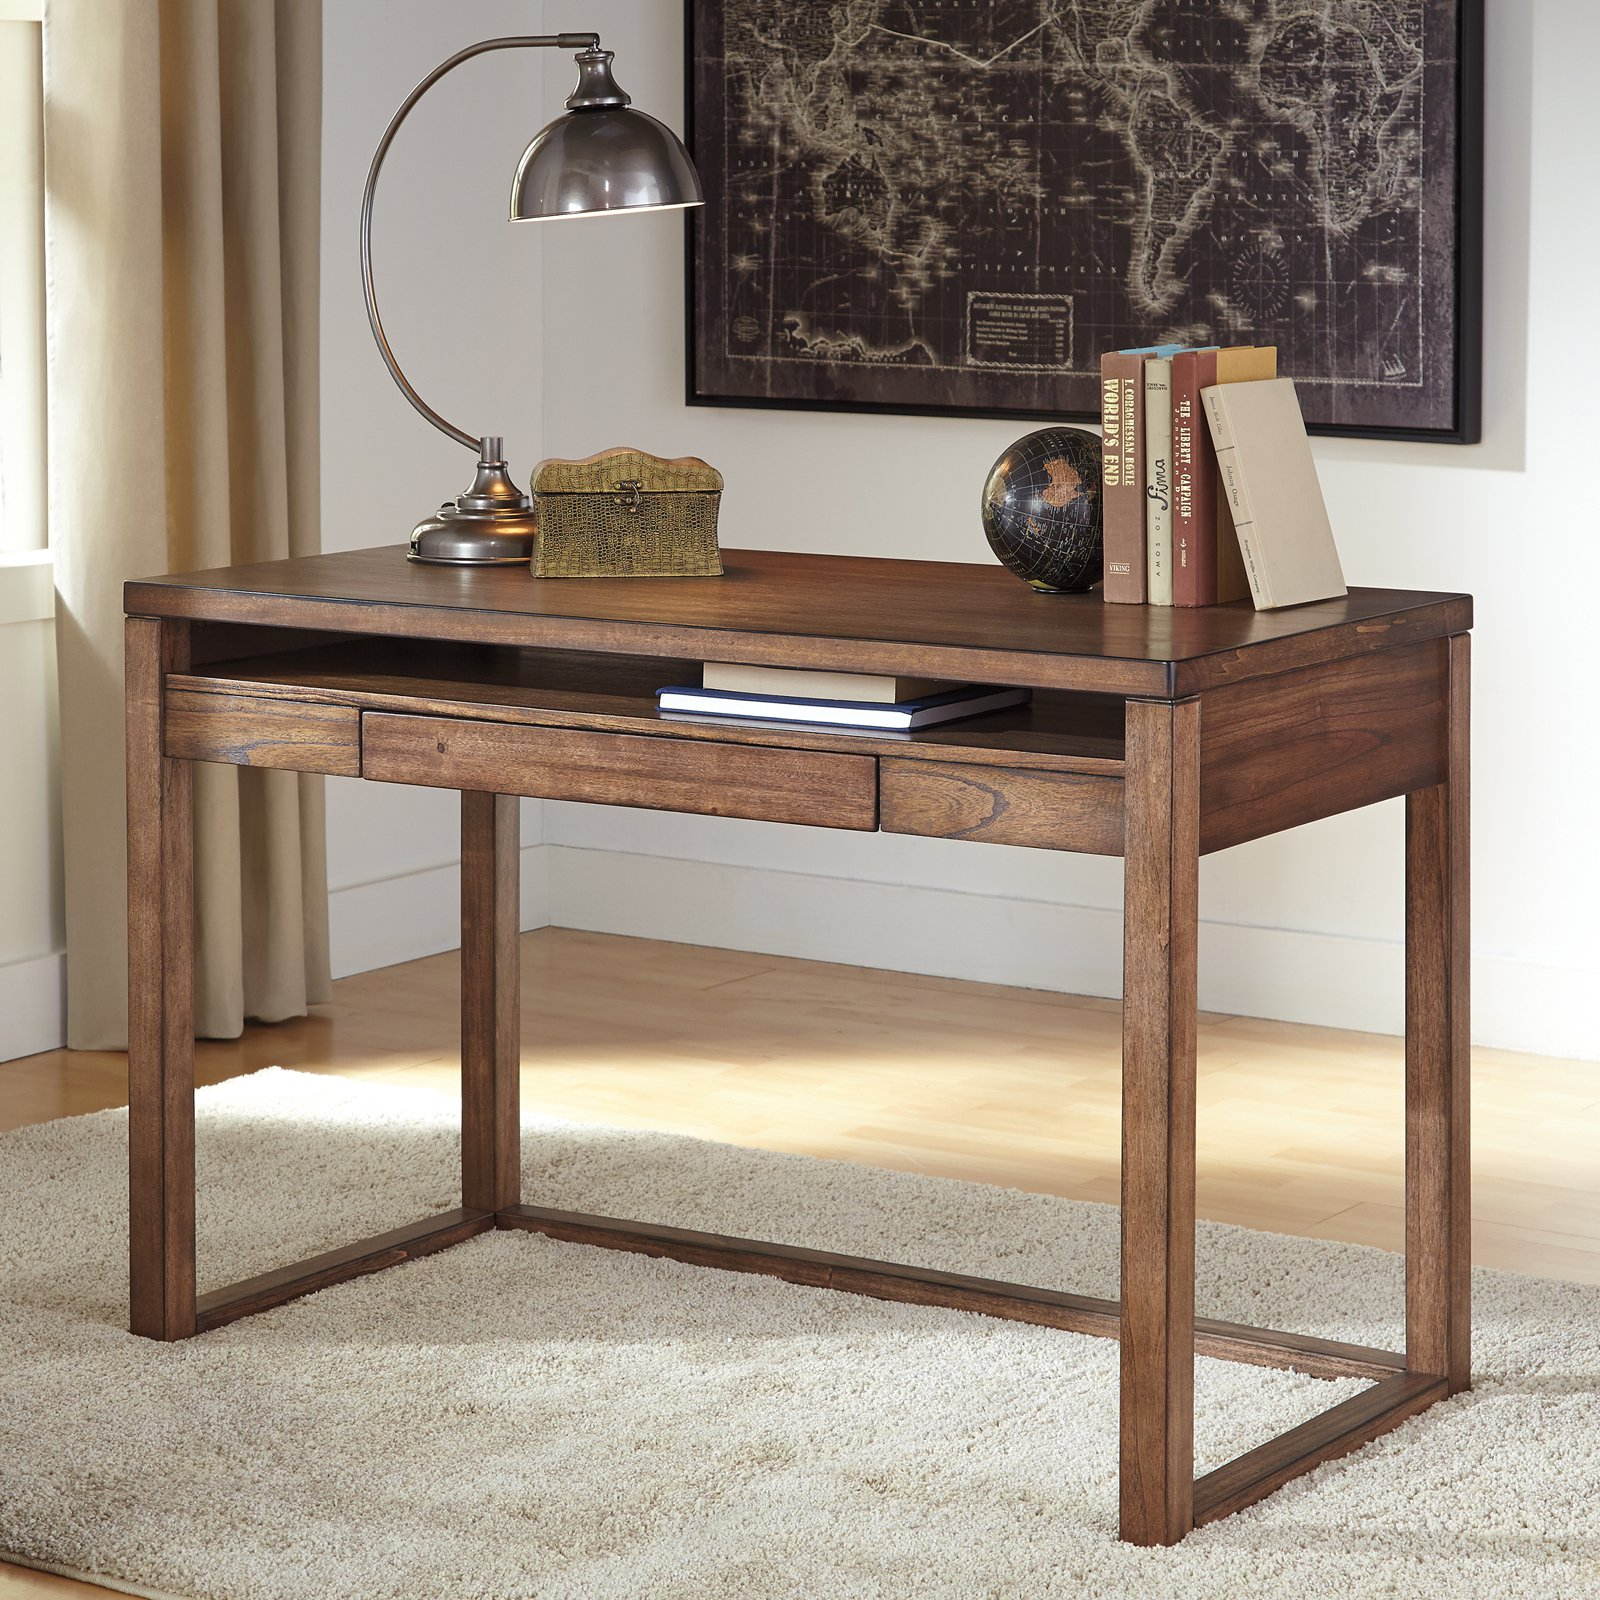 Signature Design by Ashley Baybrin Writing Desk